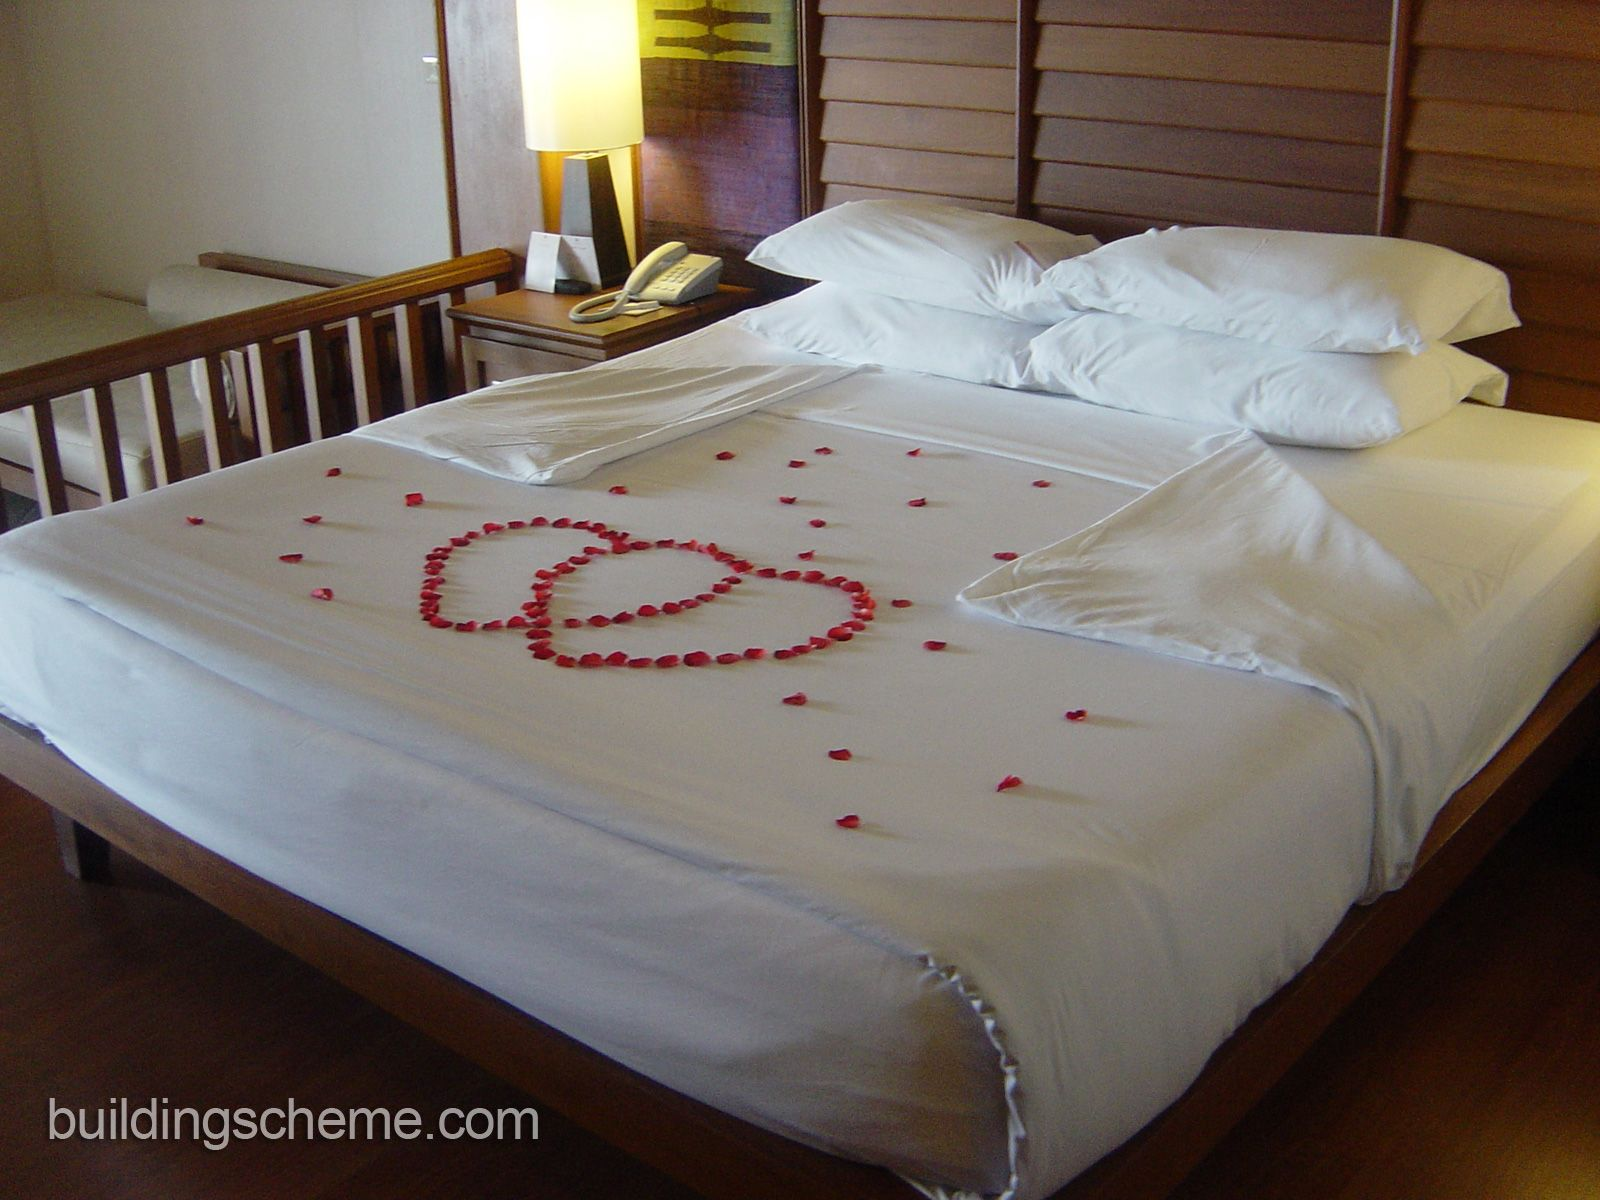 Romantic Valentines Day Ideas Classic Bedrooms for Honeymoon with Love Rose  Petals Decoration. Romantic Valentines Day Ideas Classic Bedrooms for Honeymoon with